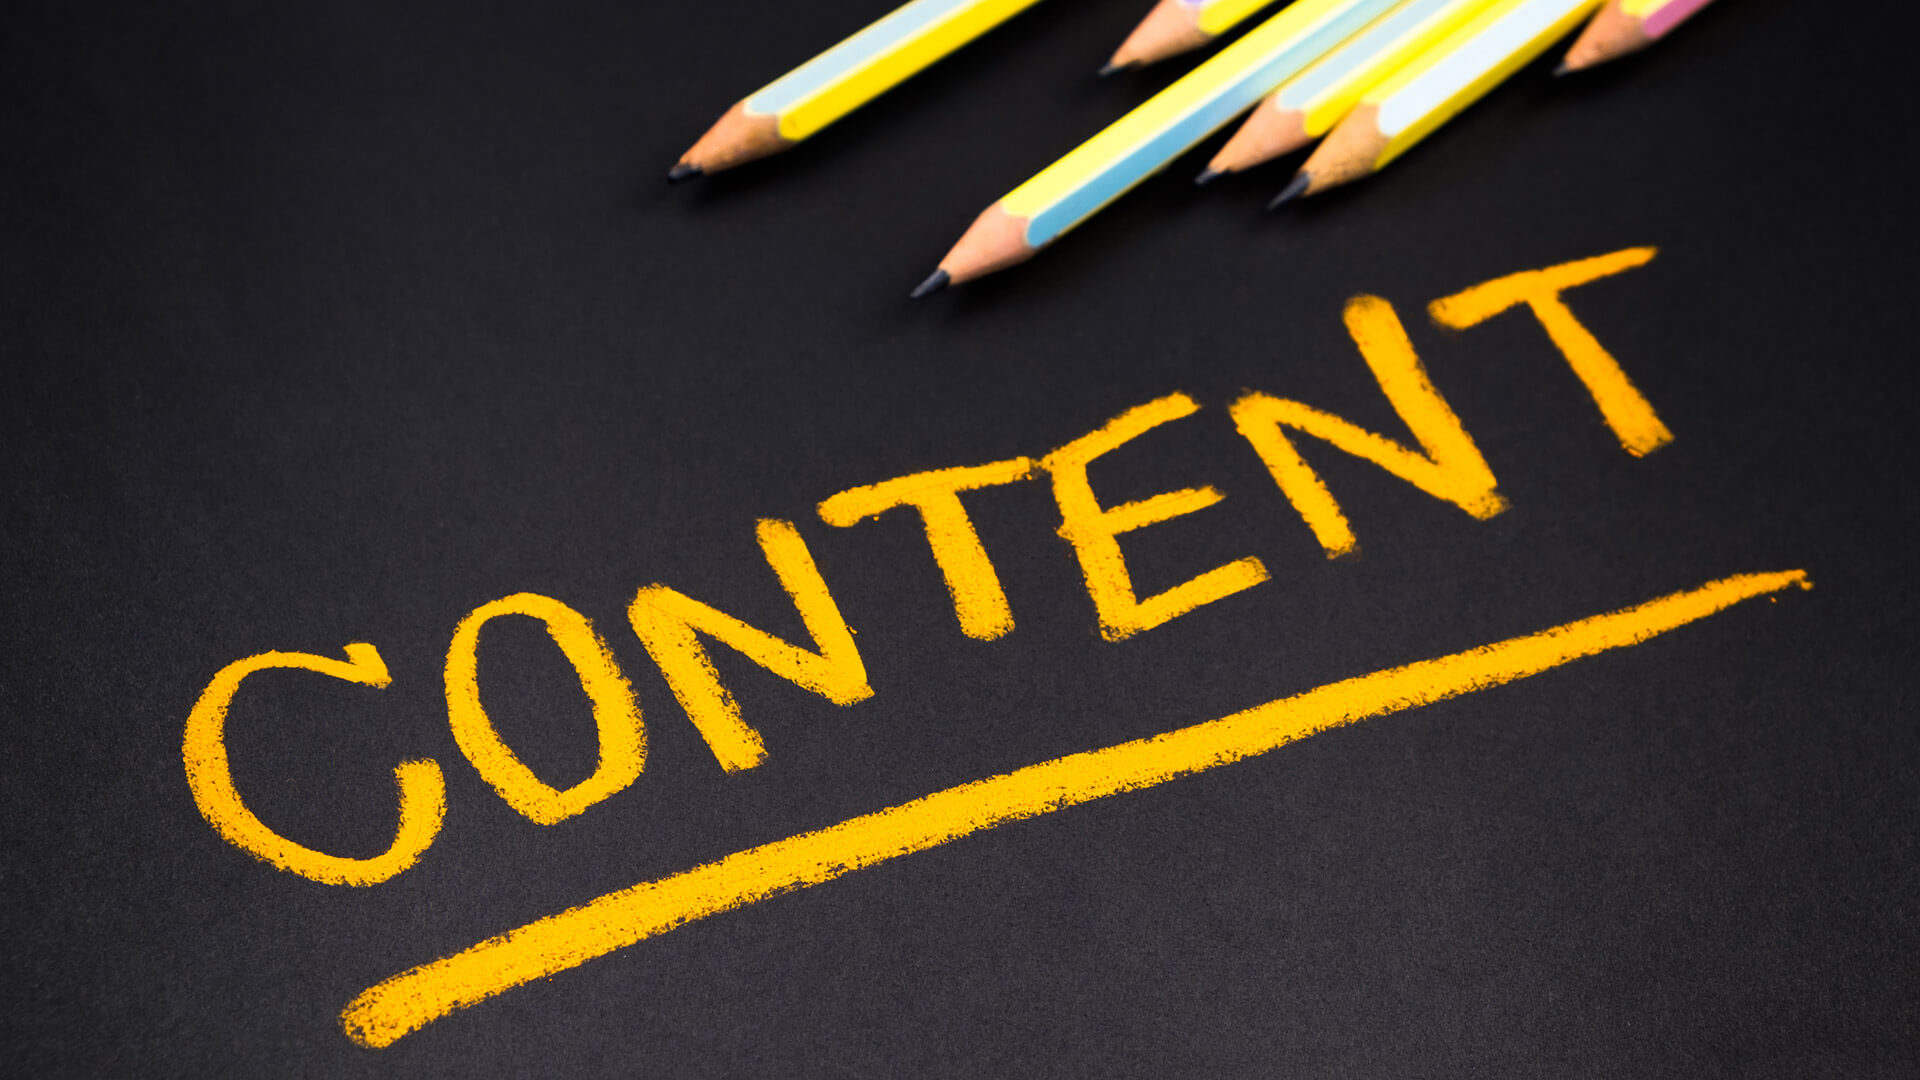 Using Social Metrics Seo Questions To Create Content